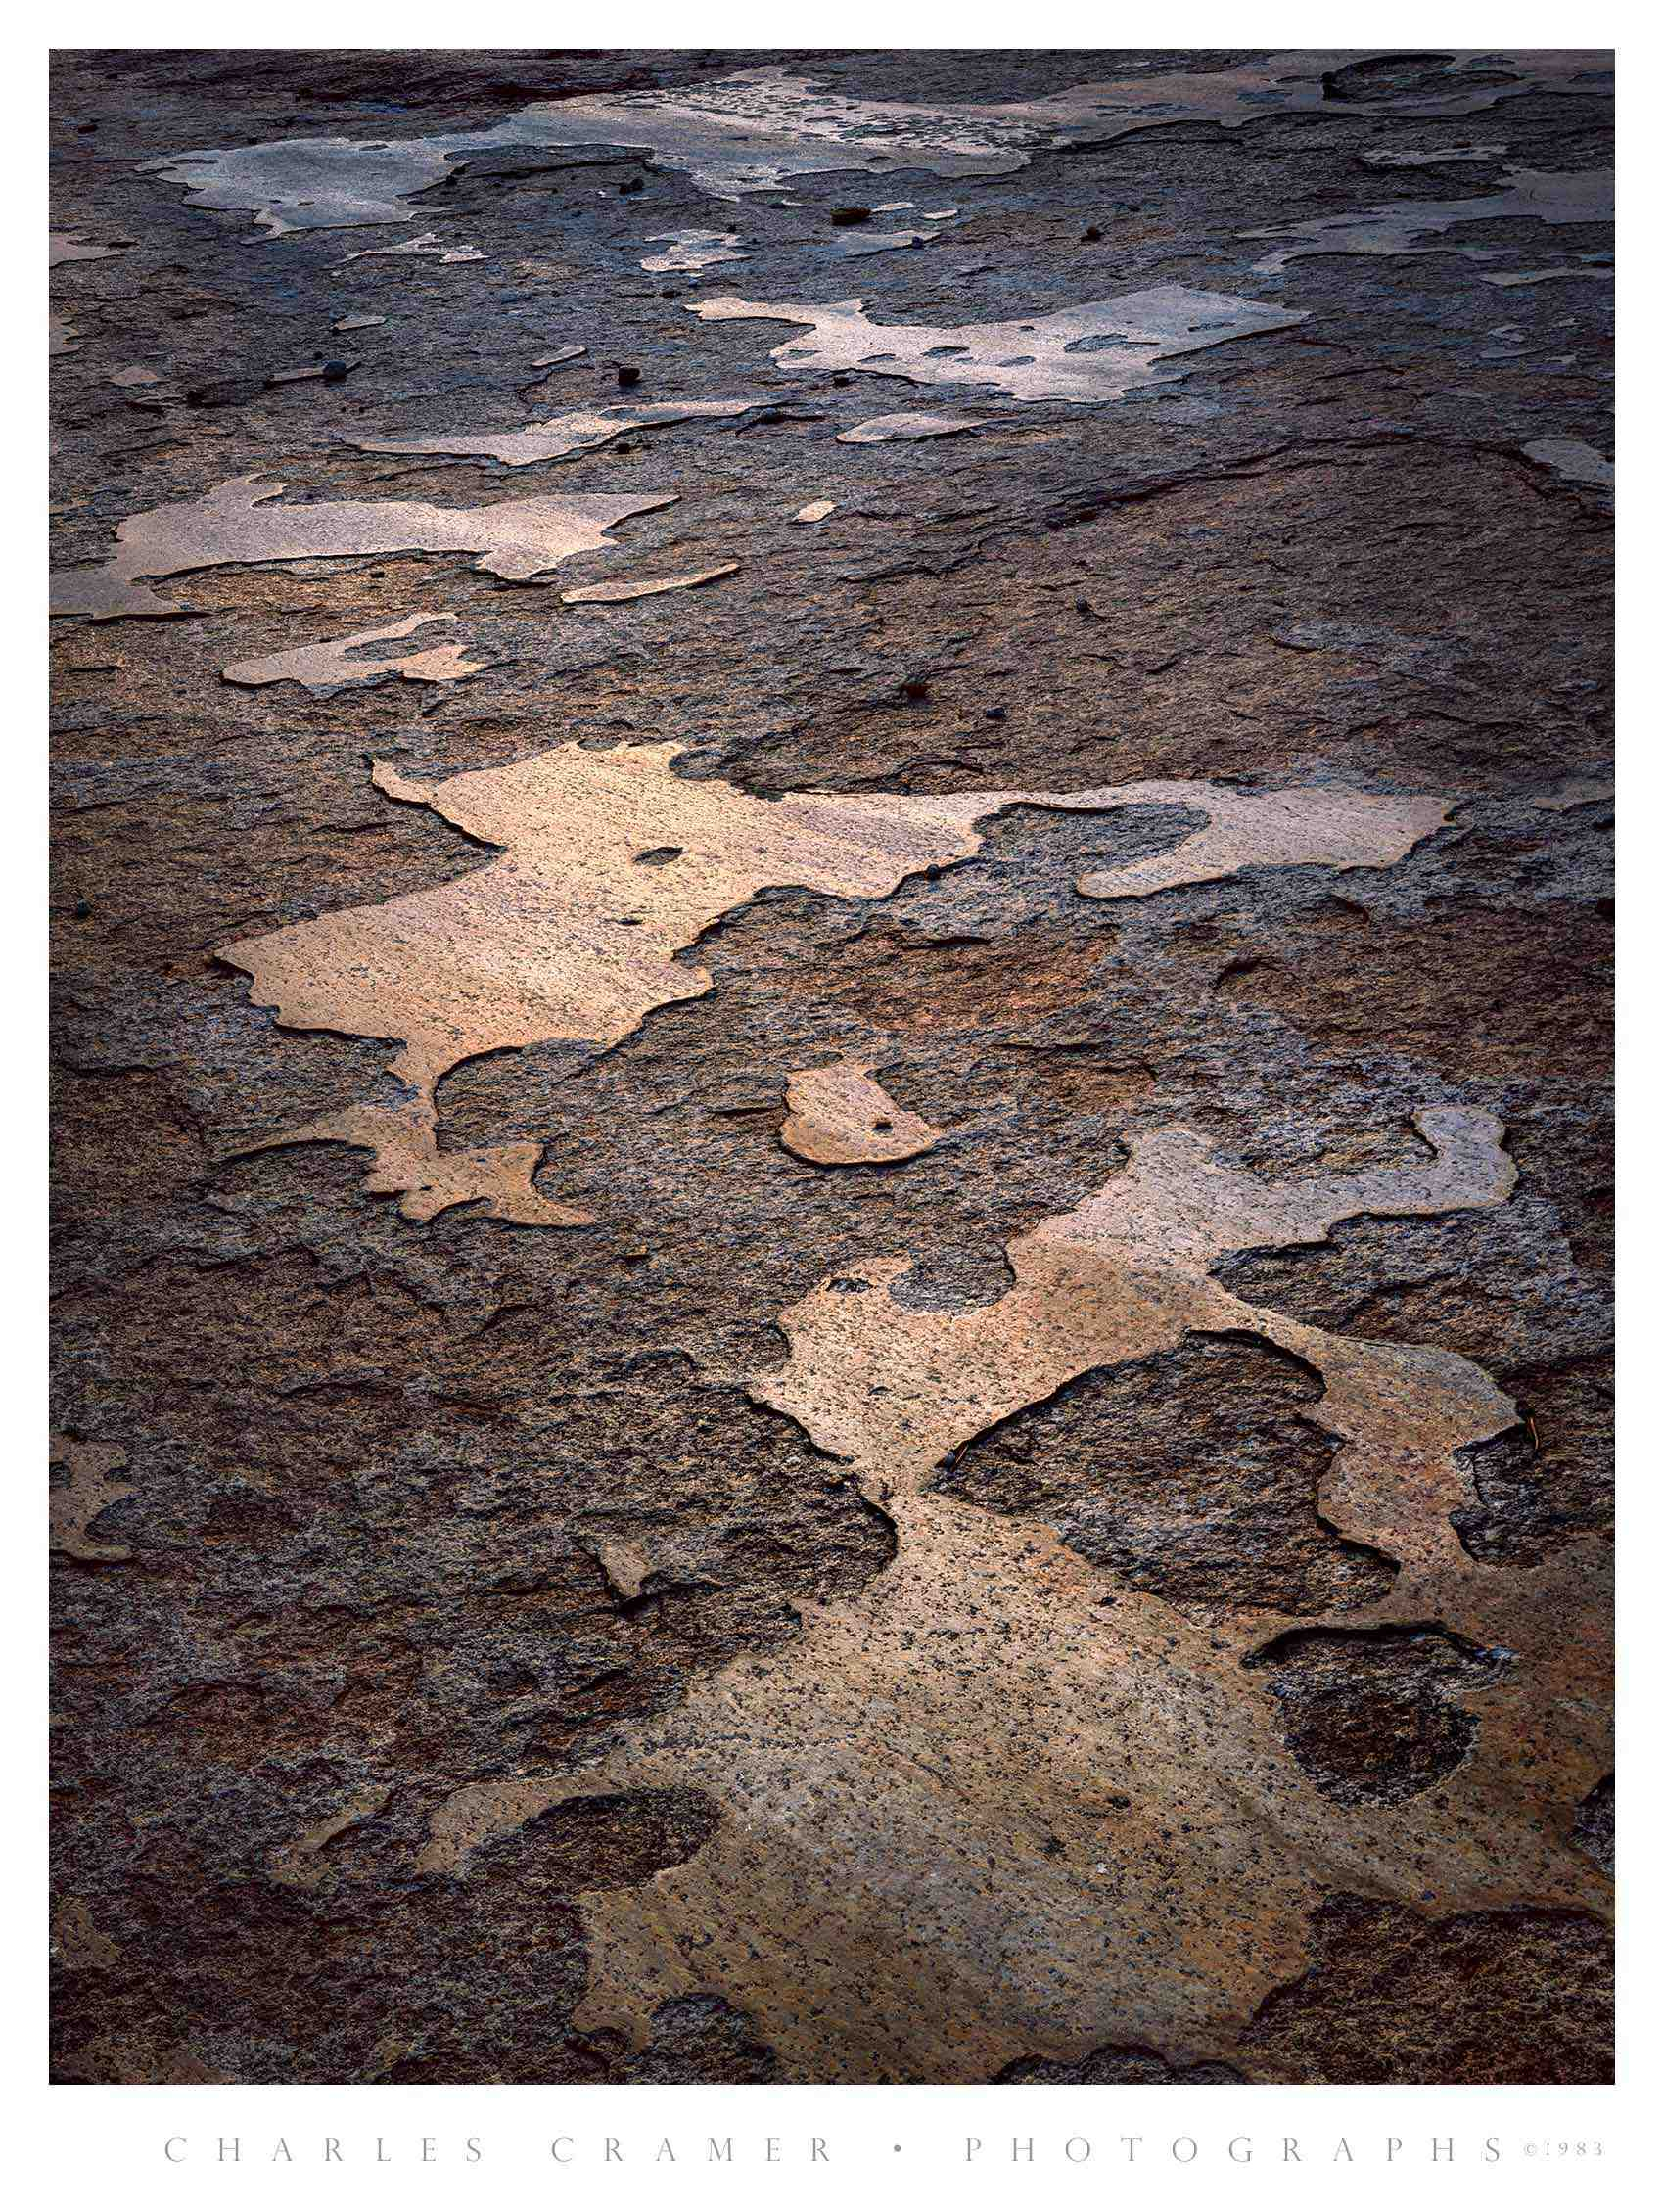 Glacial Polish, Glen Aulin, Yosemite 1982